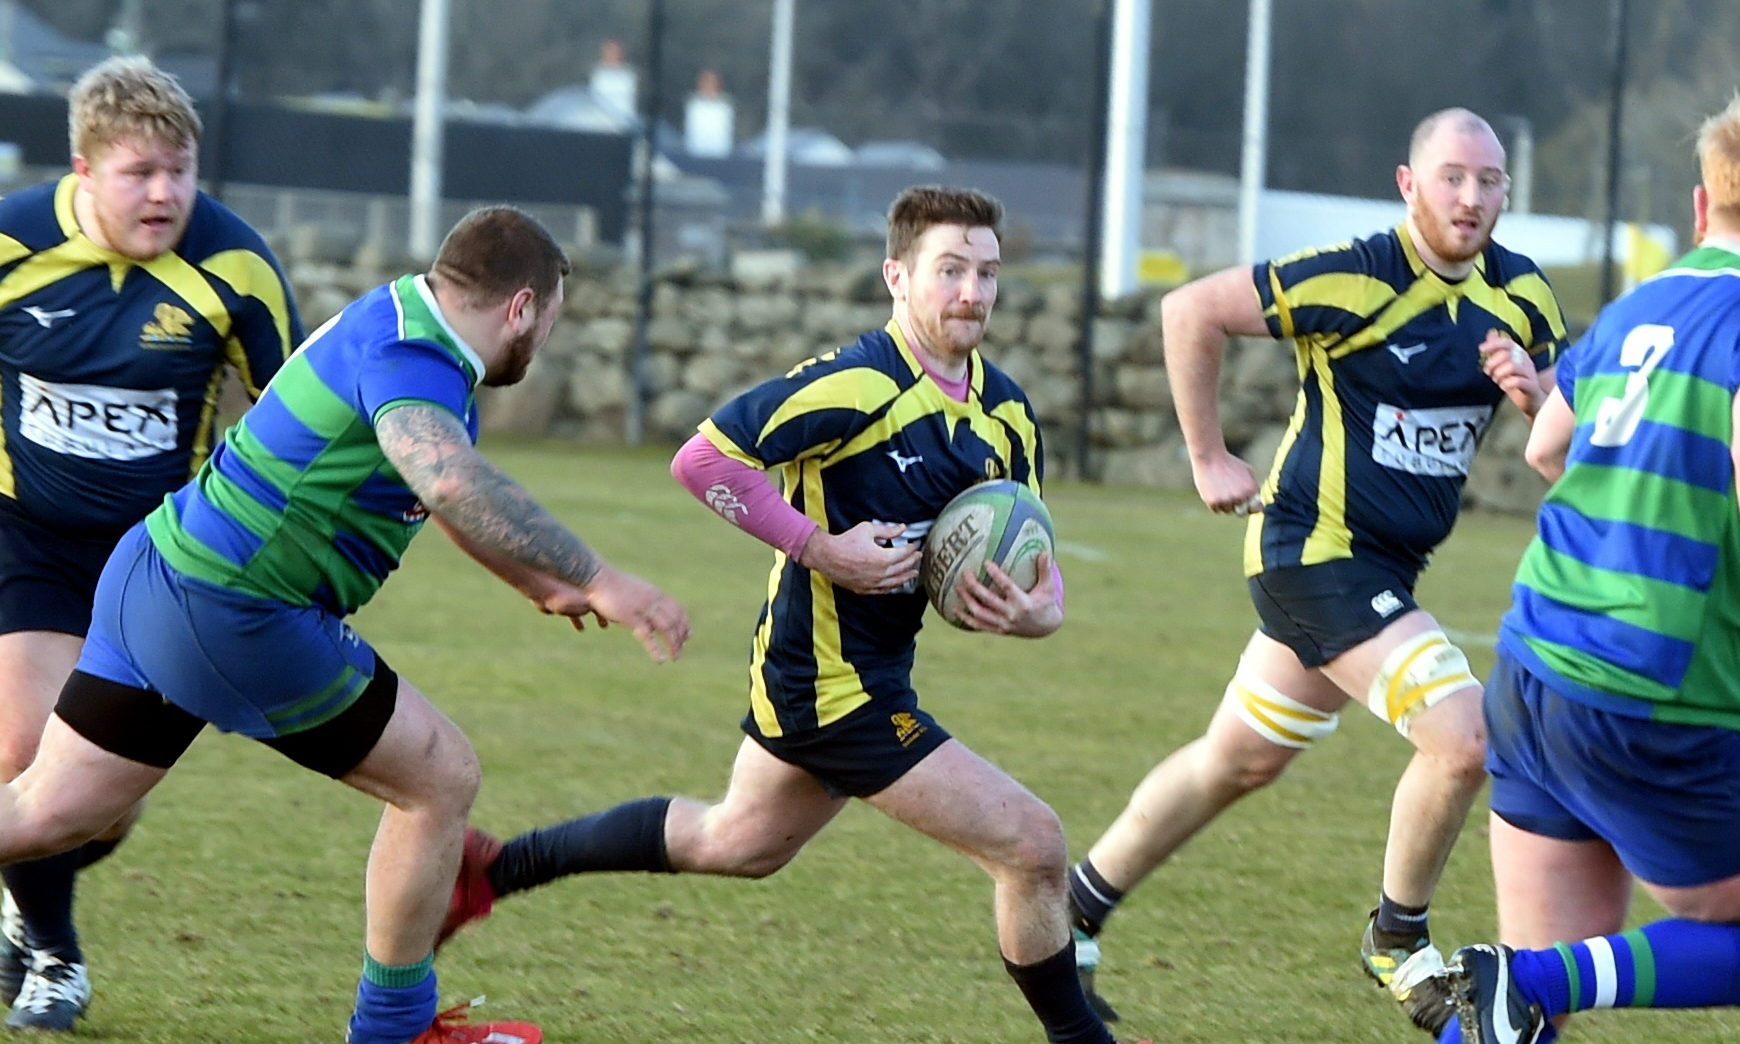 Gordonians are awaiting news on when competitive rugby will return.